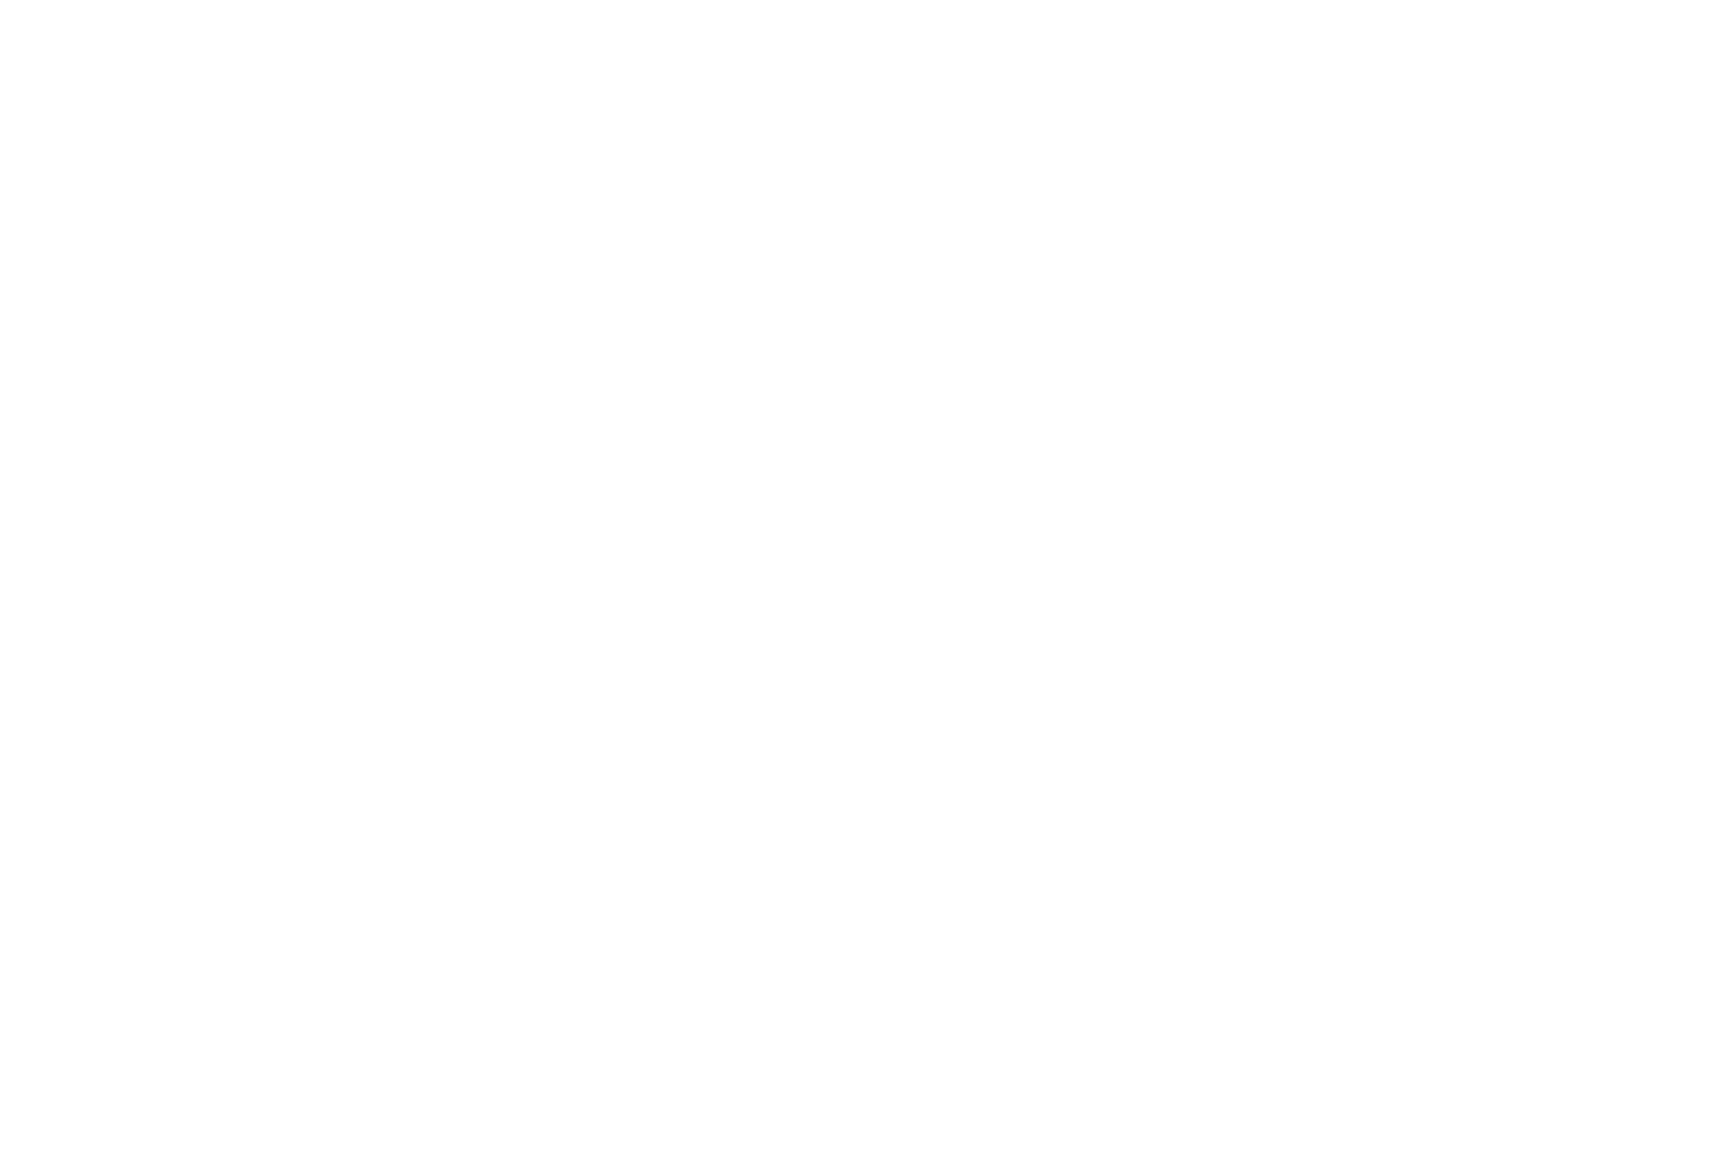 HONORABLE MENTION - Queen Palm International Film Festival - 2021